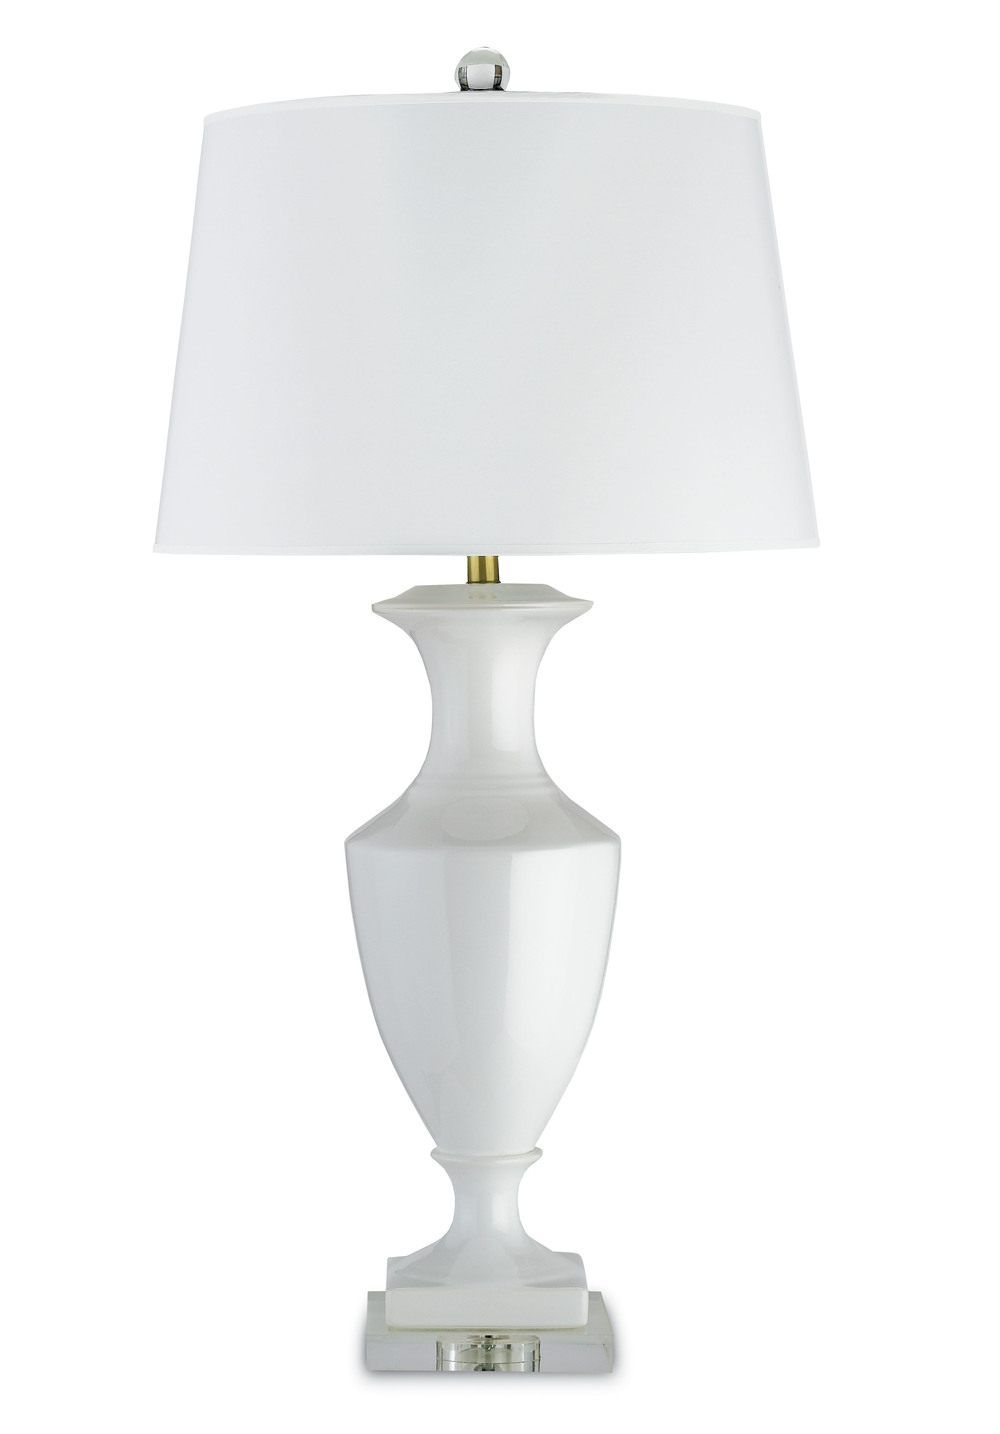 Currey & Company - Timeless White Table Lamp